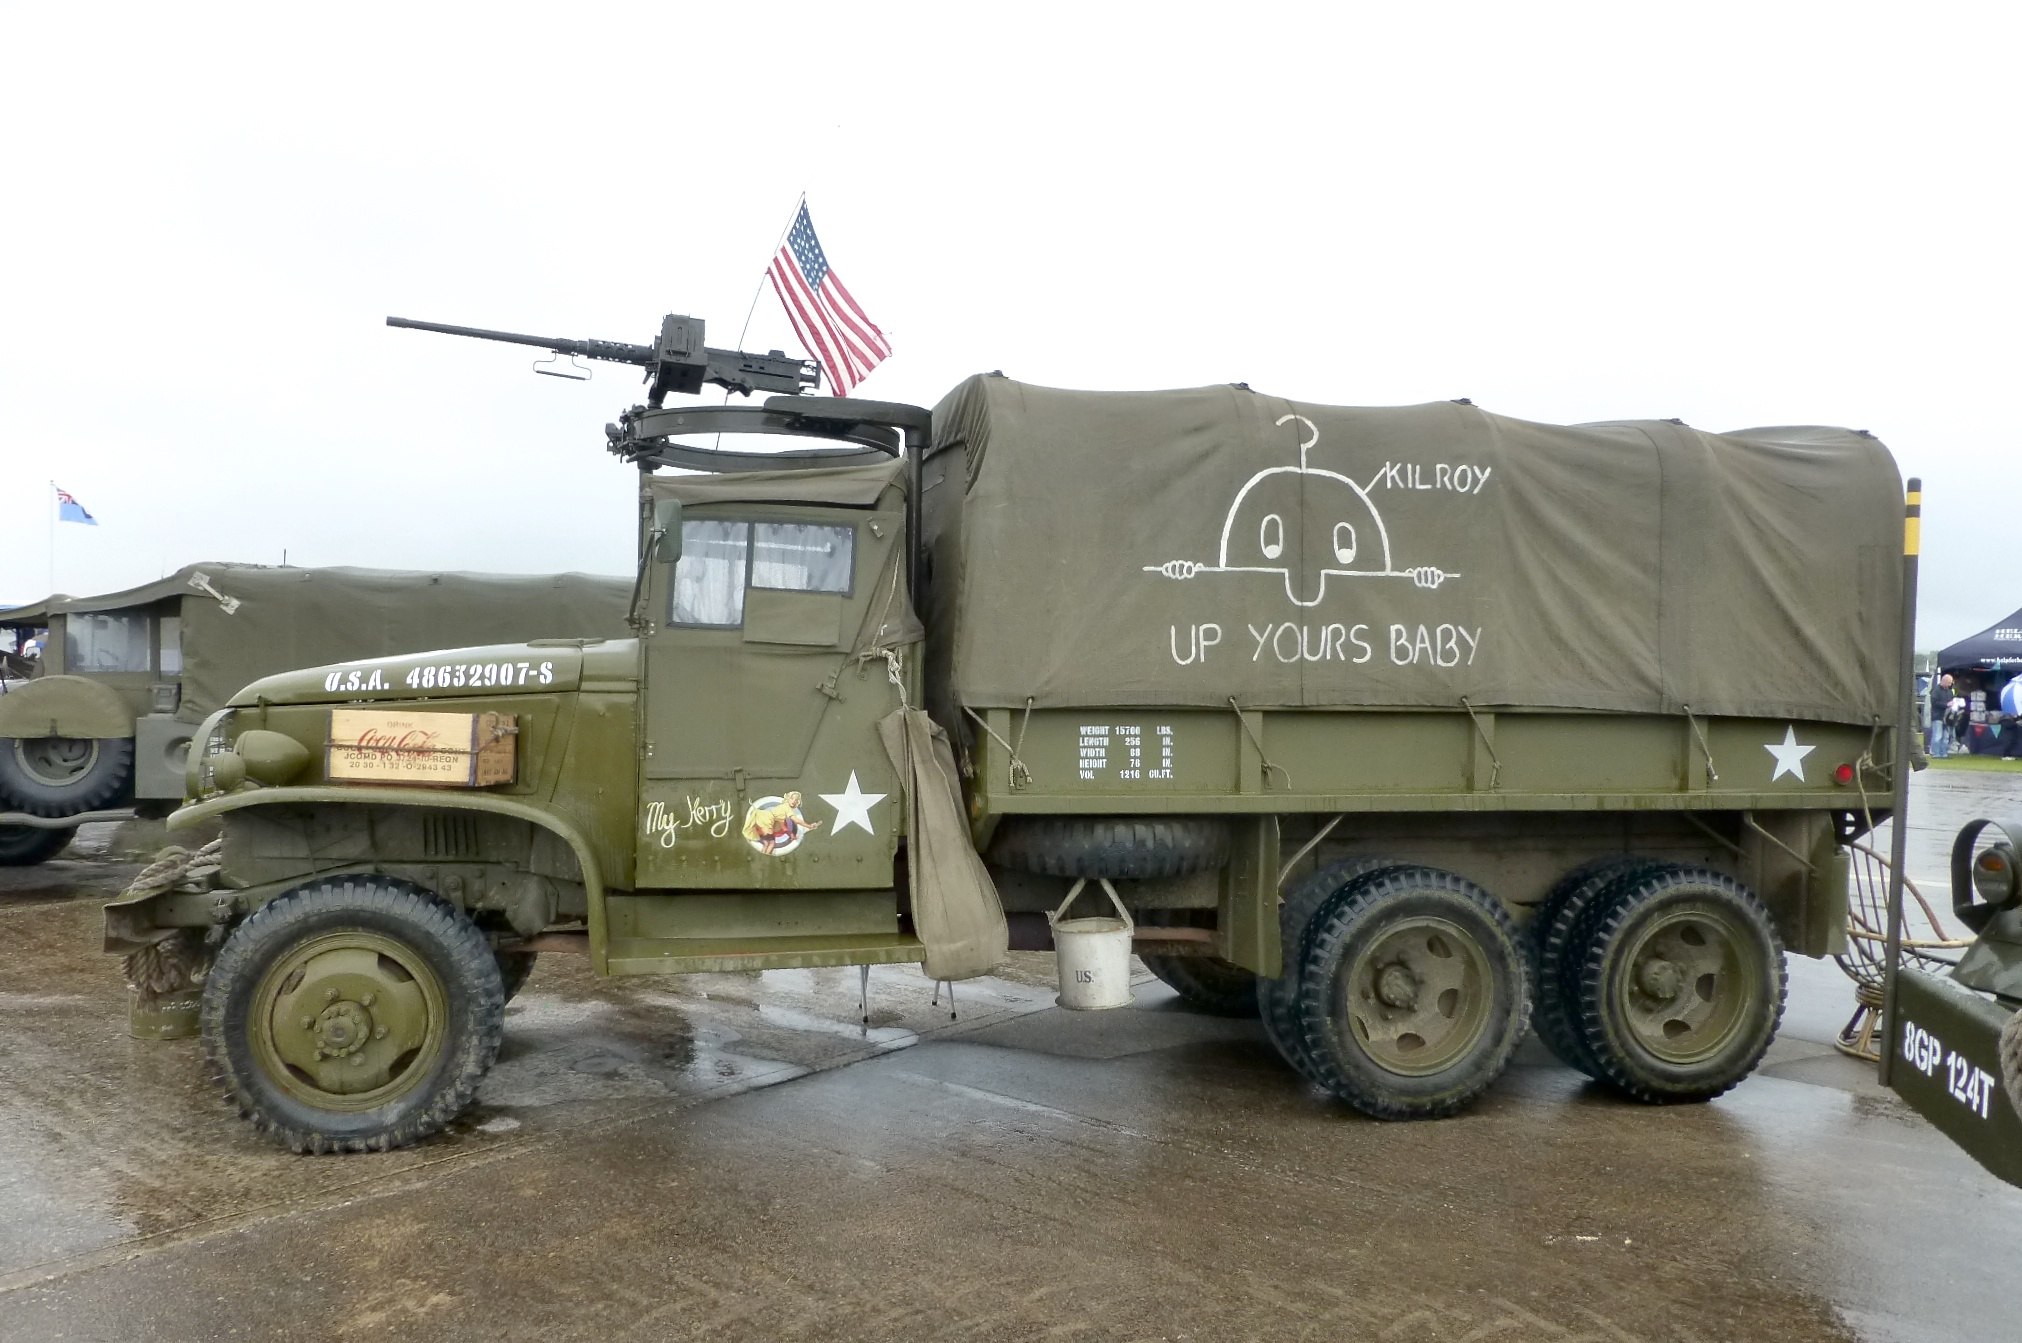 File Kilroy On Army Truck Jpg Wikimedia Commons